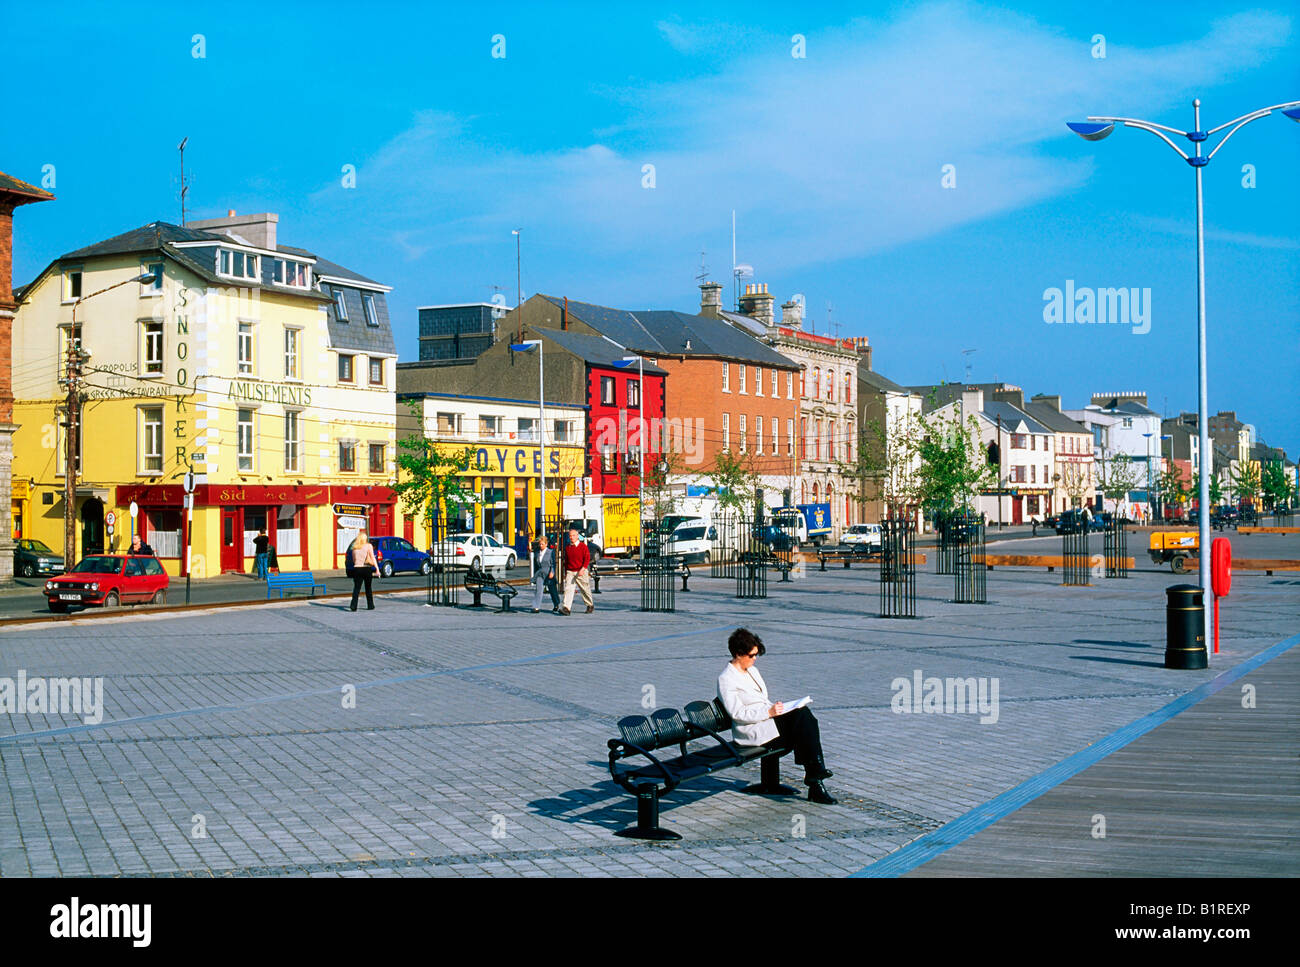 The Quays Wexford Town Co Wexford Ireland Stock Photo